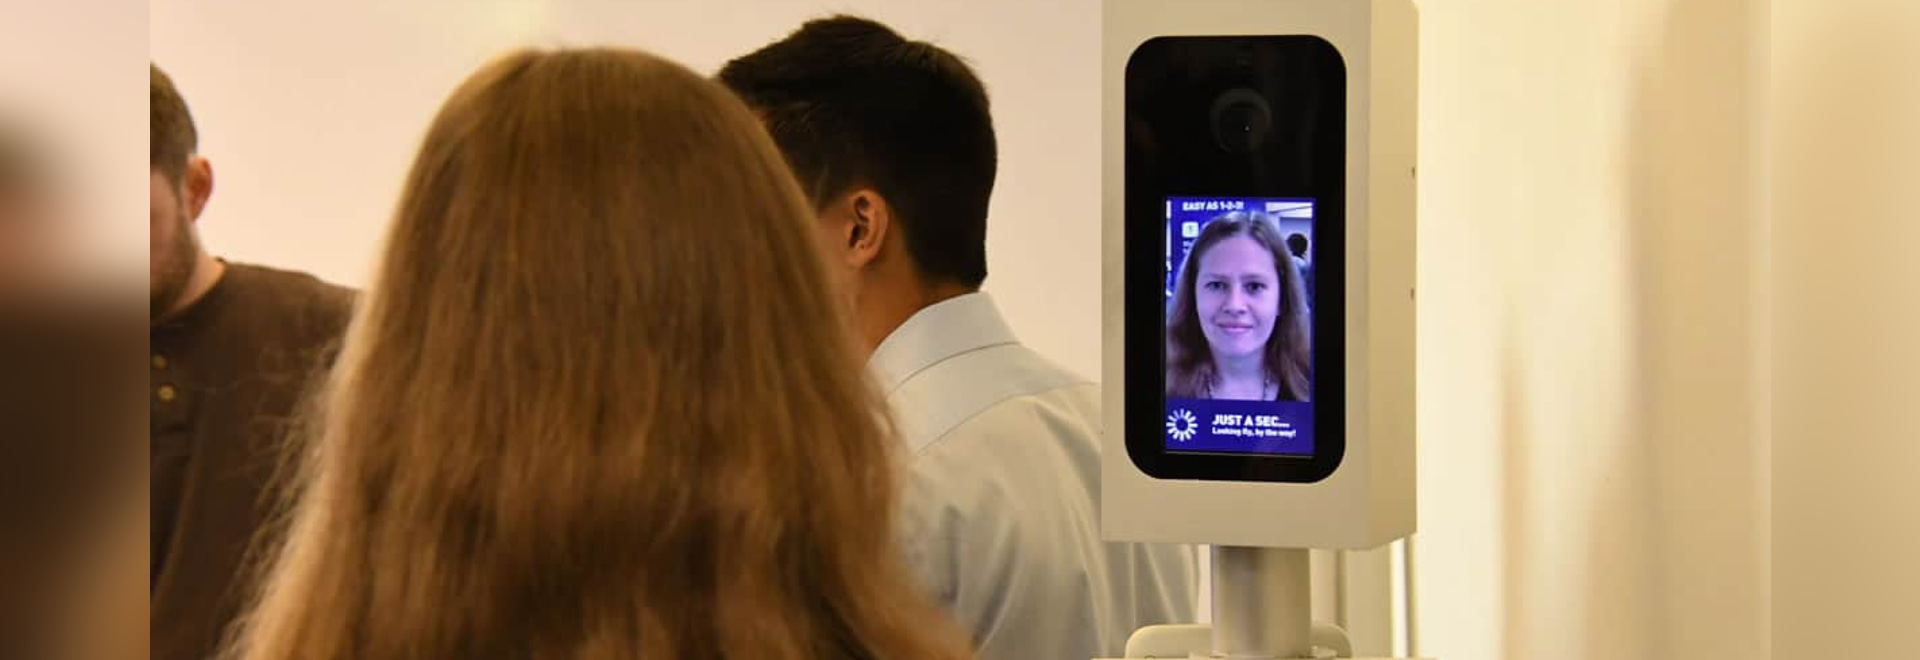 In 2017, JetBlue collaborated with U.S. Customs and Border Protection (CBP) and SITA to test a biometric-enabled self-boarding process.